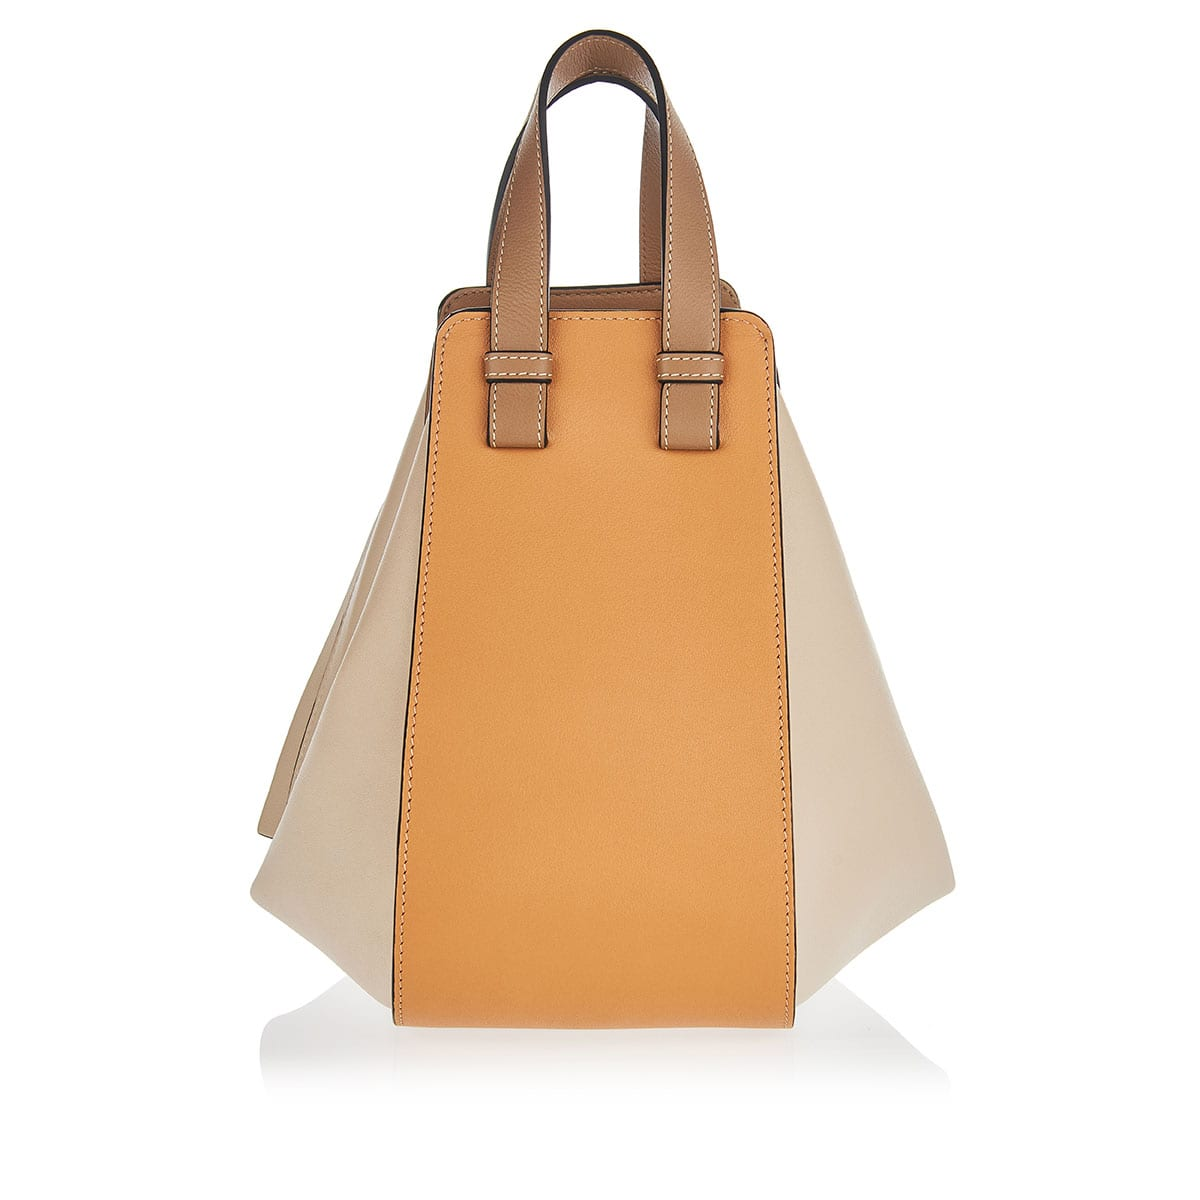 Hammock Small tricolor leather bag